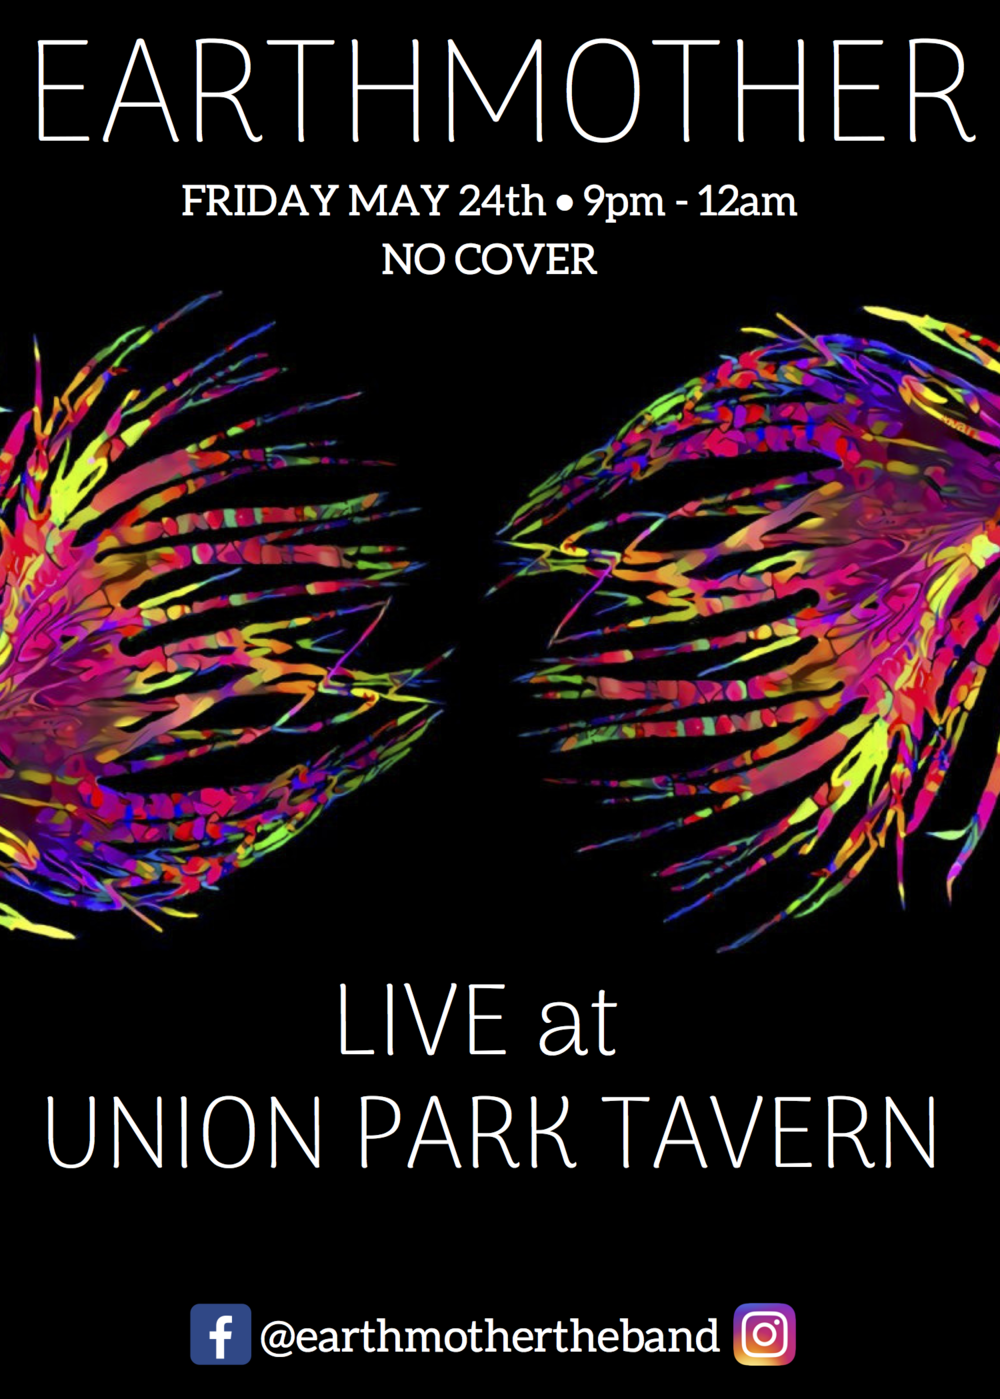 union park tavern.png